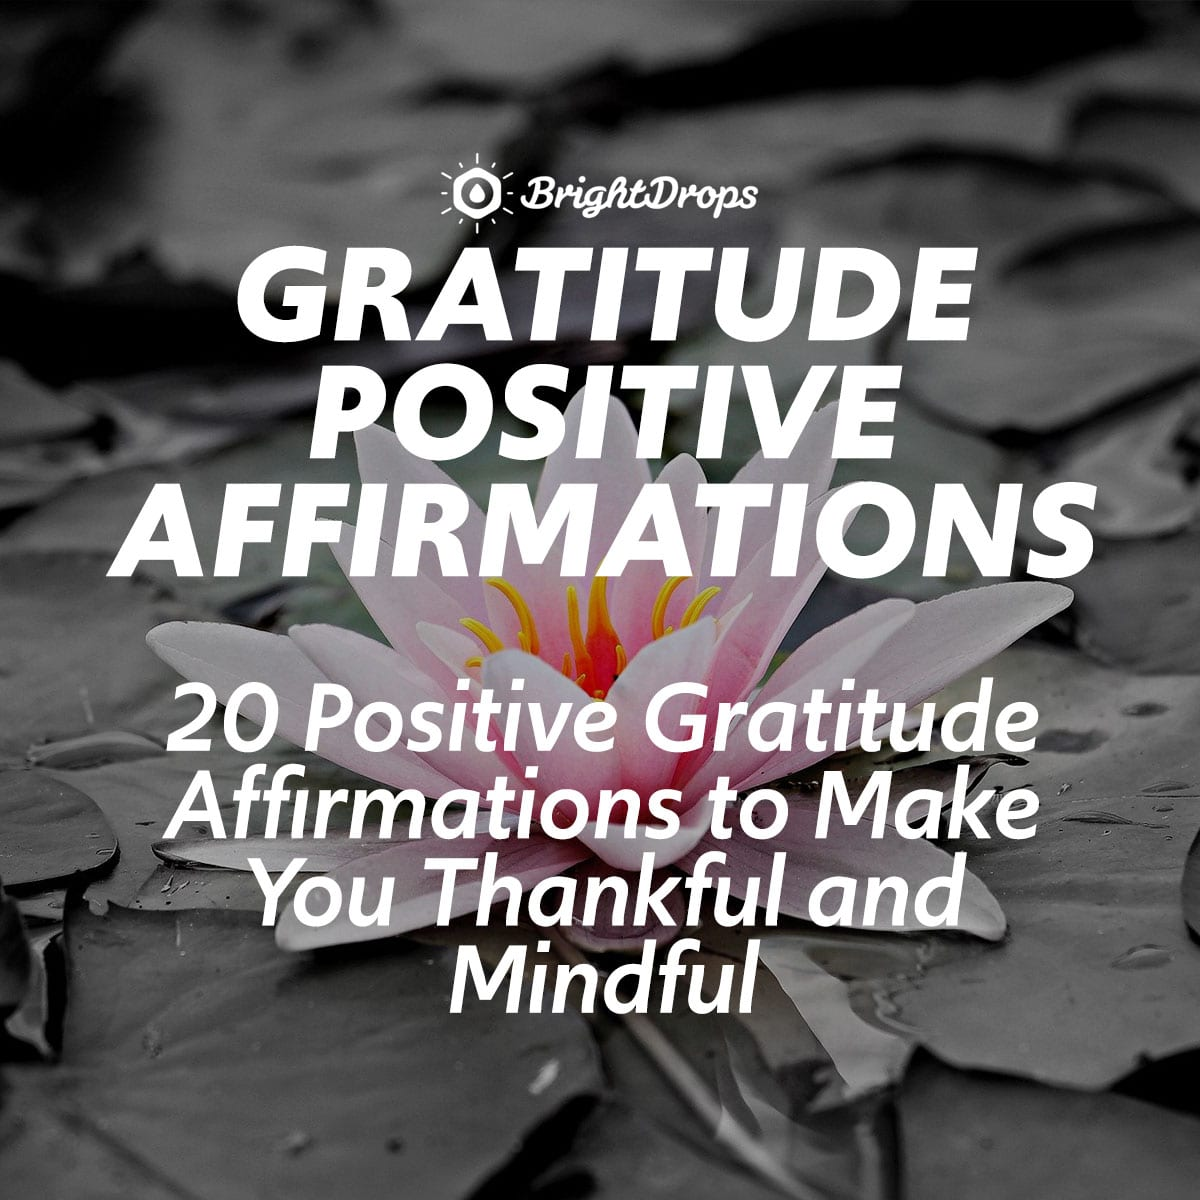 20 Positive Gratitude Affirmations to Make You Thankful and Mindful